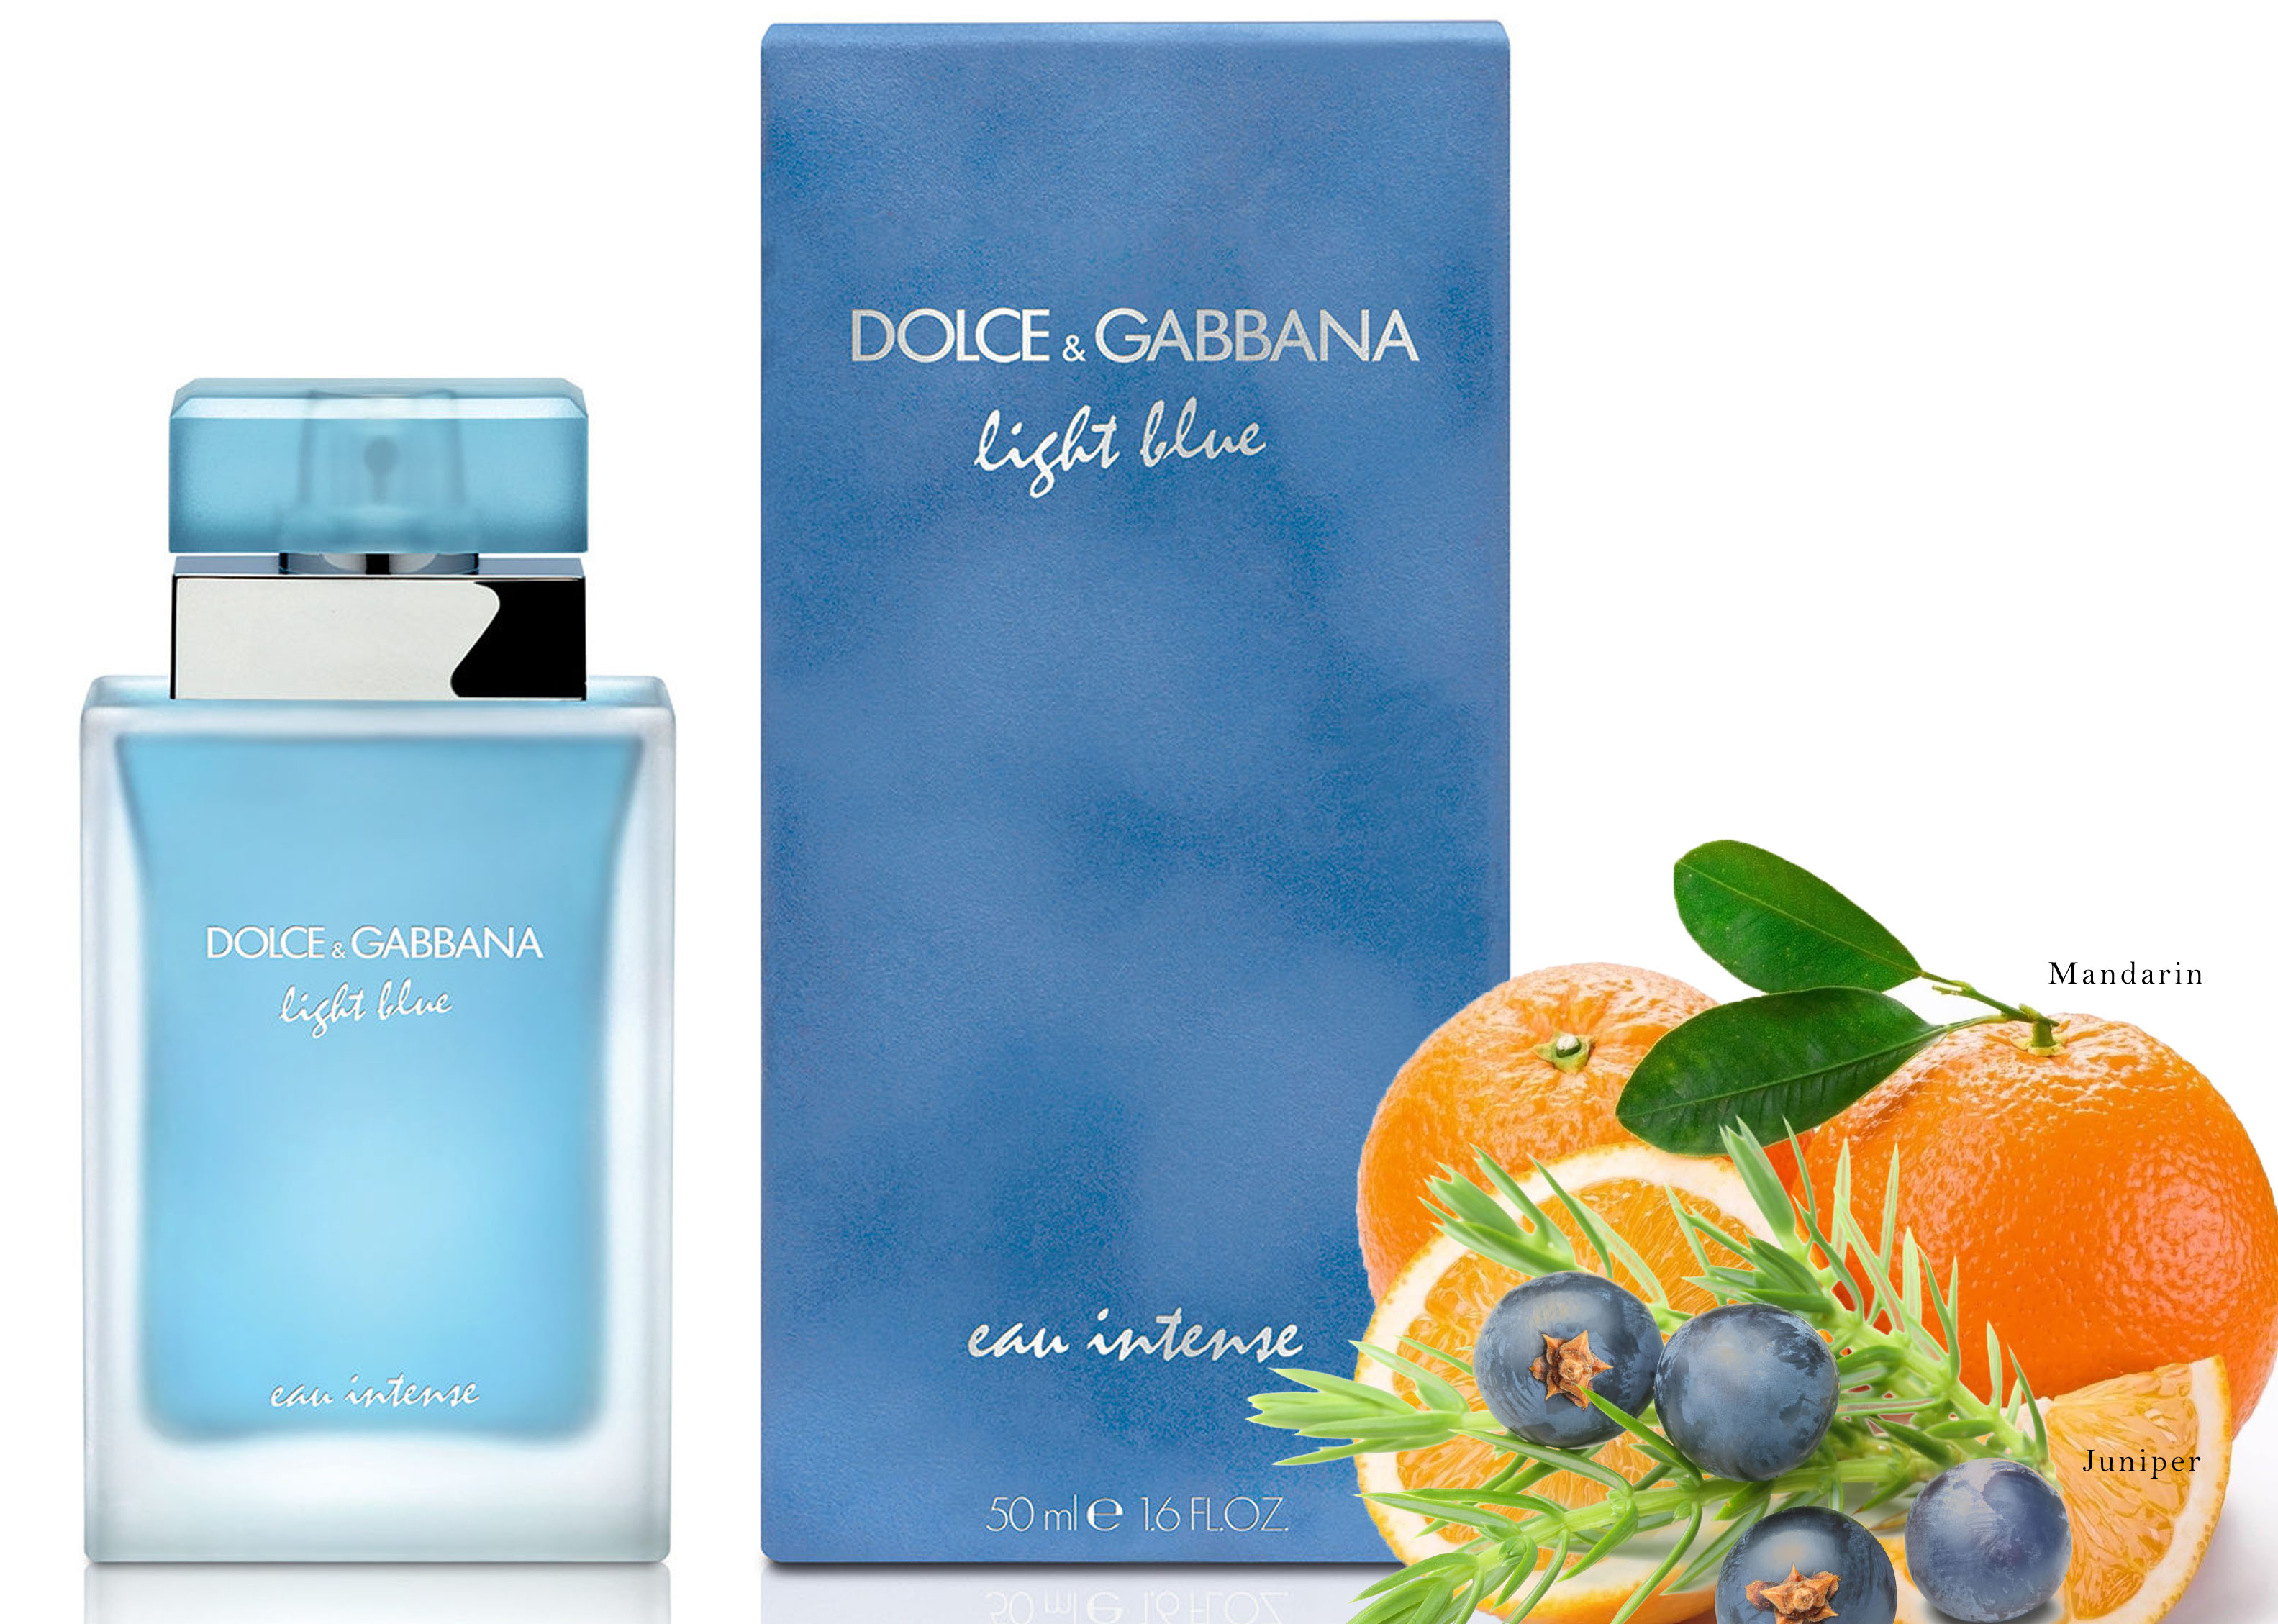 2017 05 dolce gabbana intense perfume review - Dolce Gabbana Light Blue Eau Intense